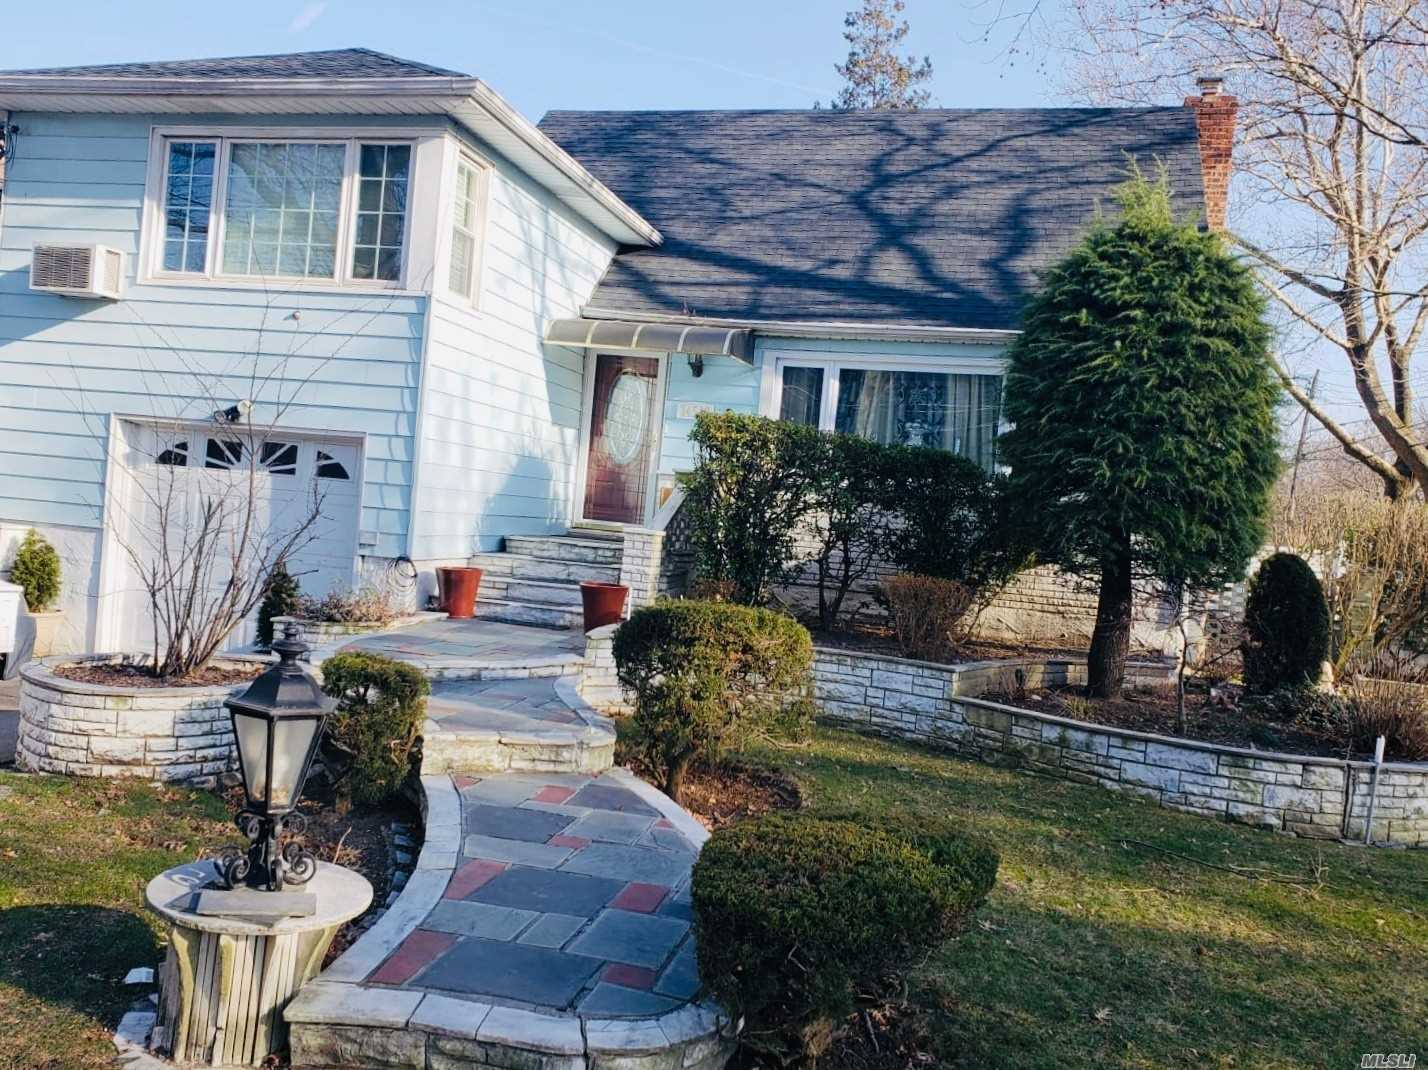 Well Maintained Split Level Corner Property, With Updated Kitchen And Bath . This Home Also Features An Inground Pool. Centrally Located Close To Lirr And Shopping. A Must See!! Mrs Clean Lives Here.